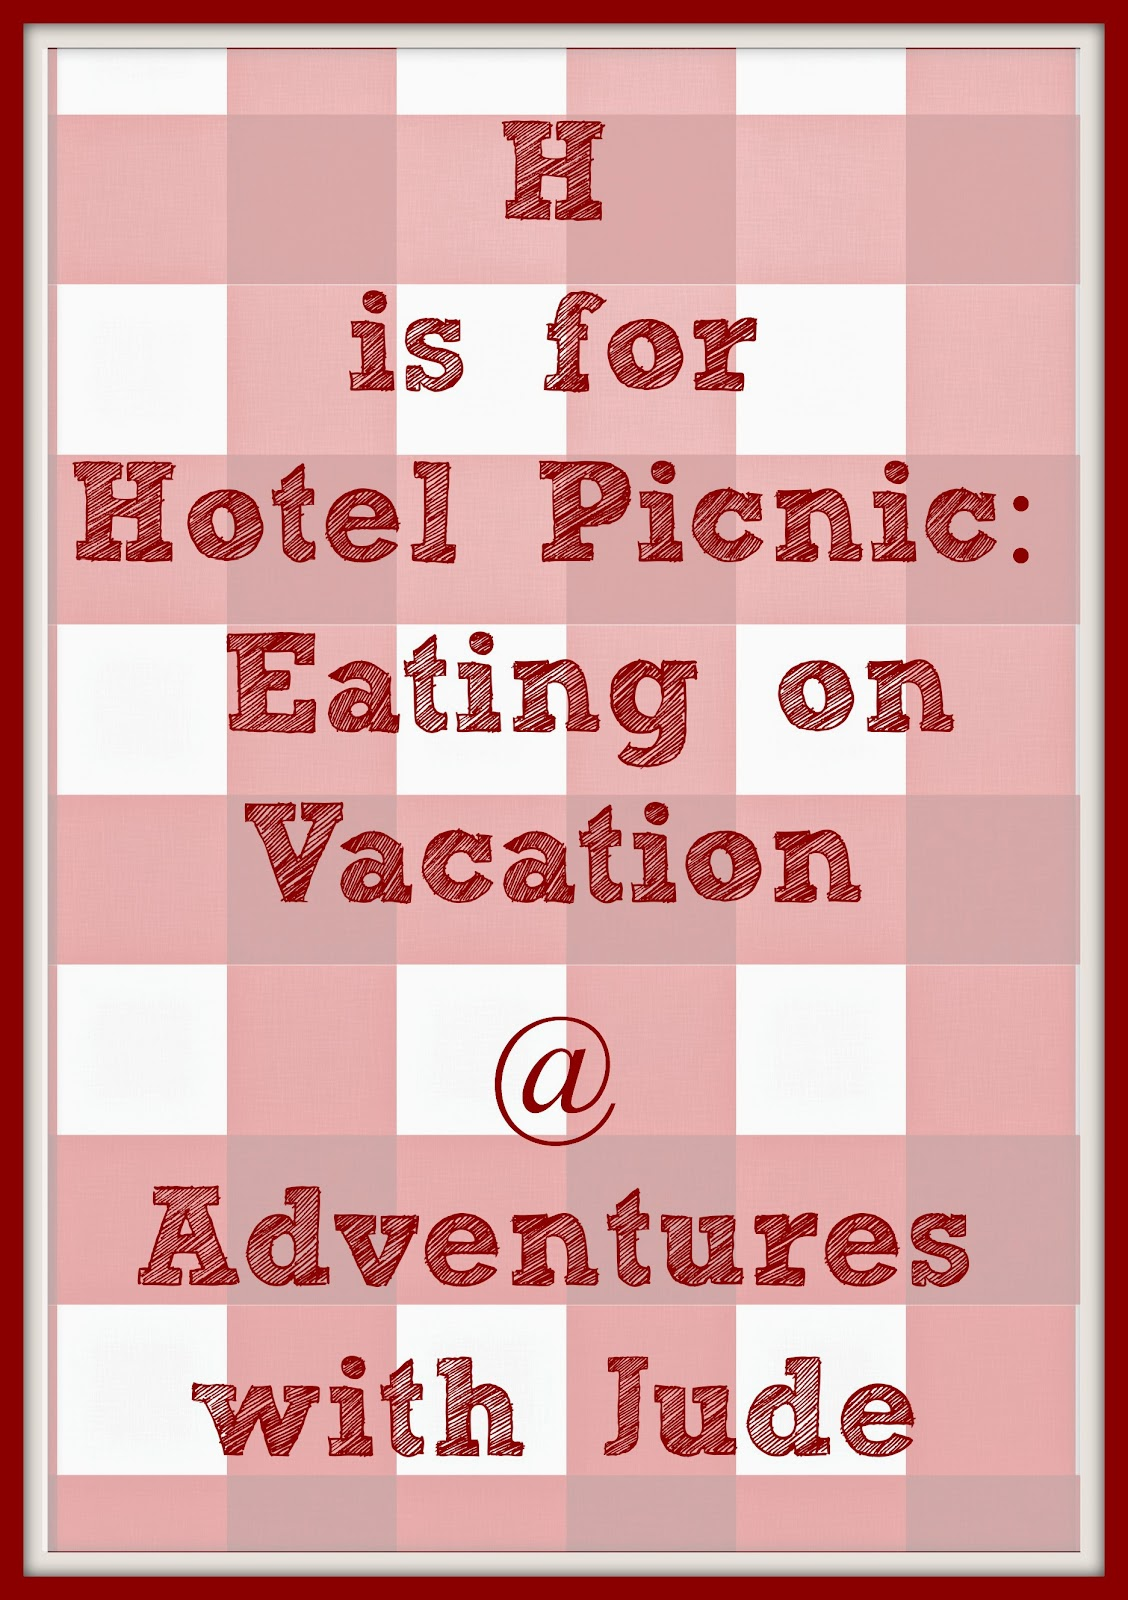 Meal ideas for vactioning in a small hotel suite